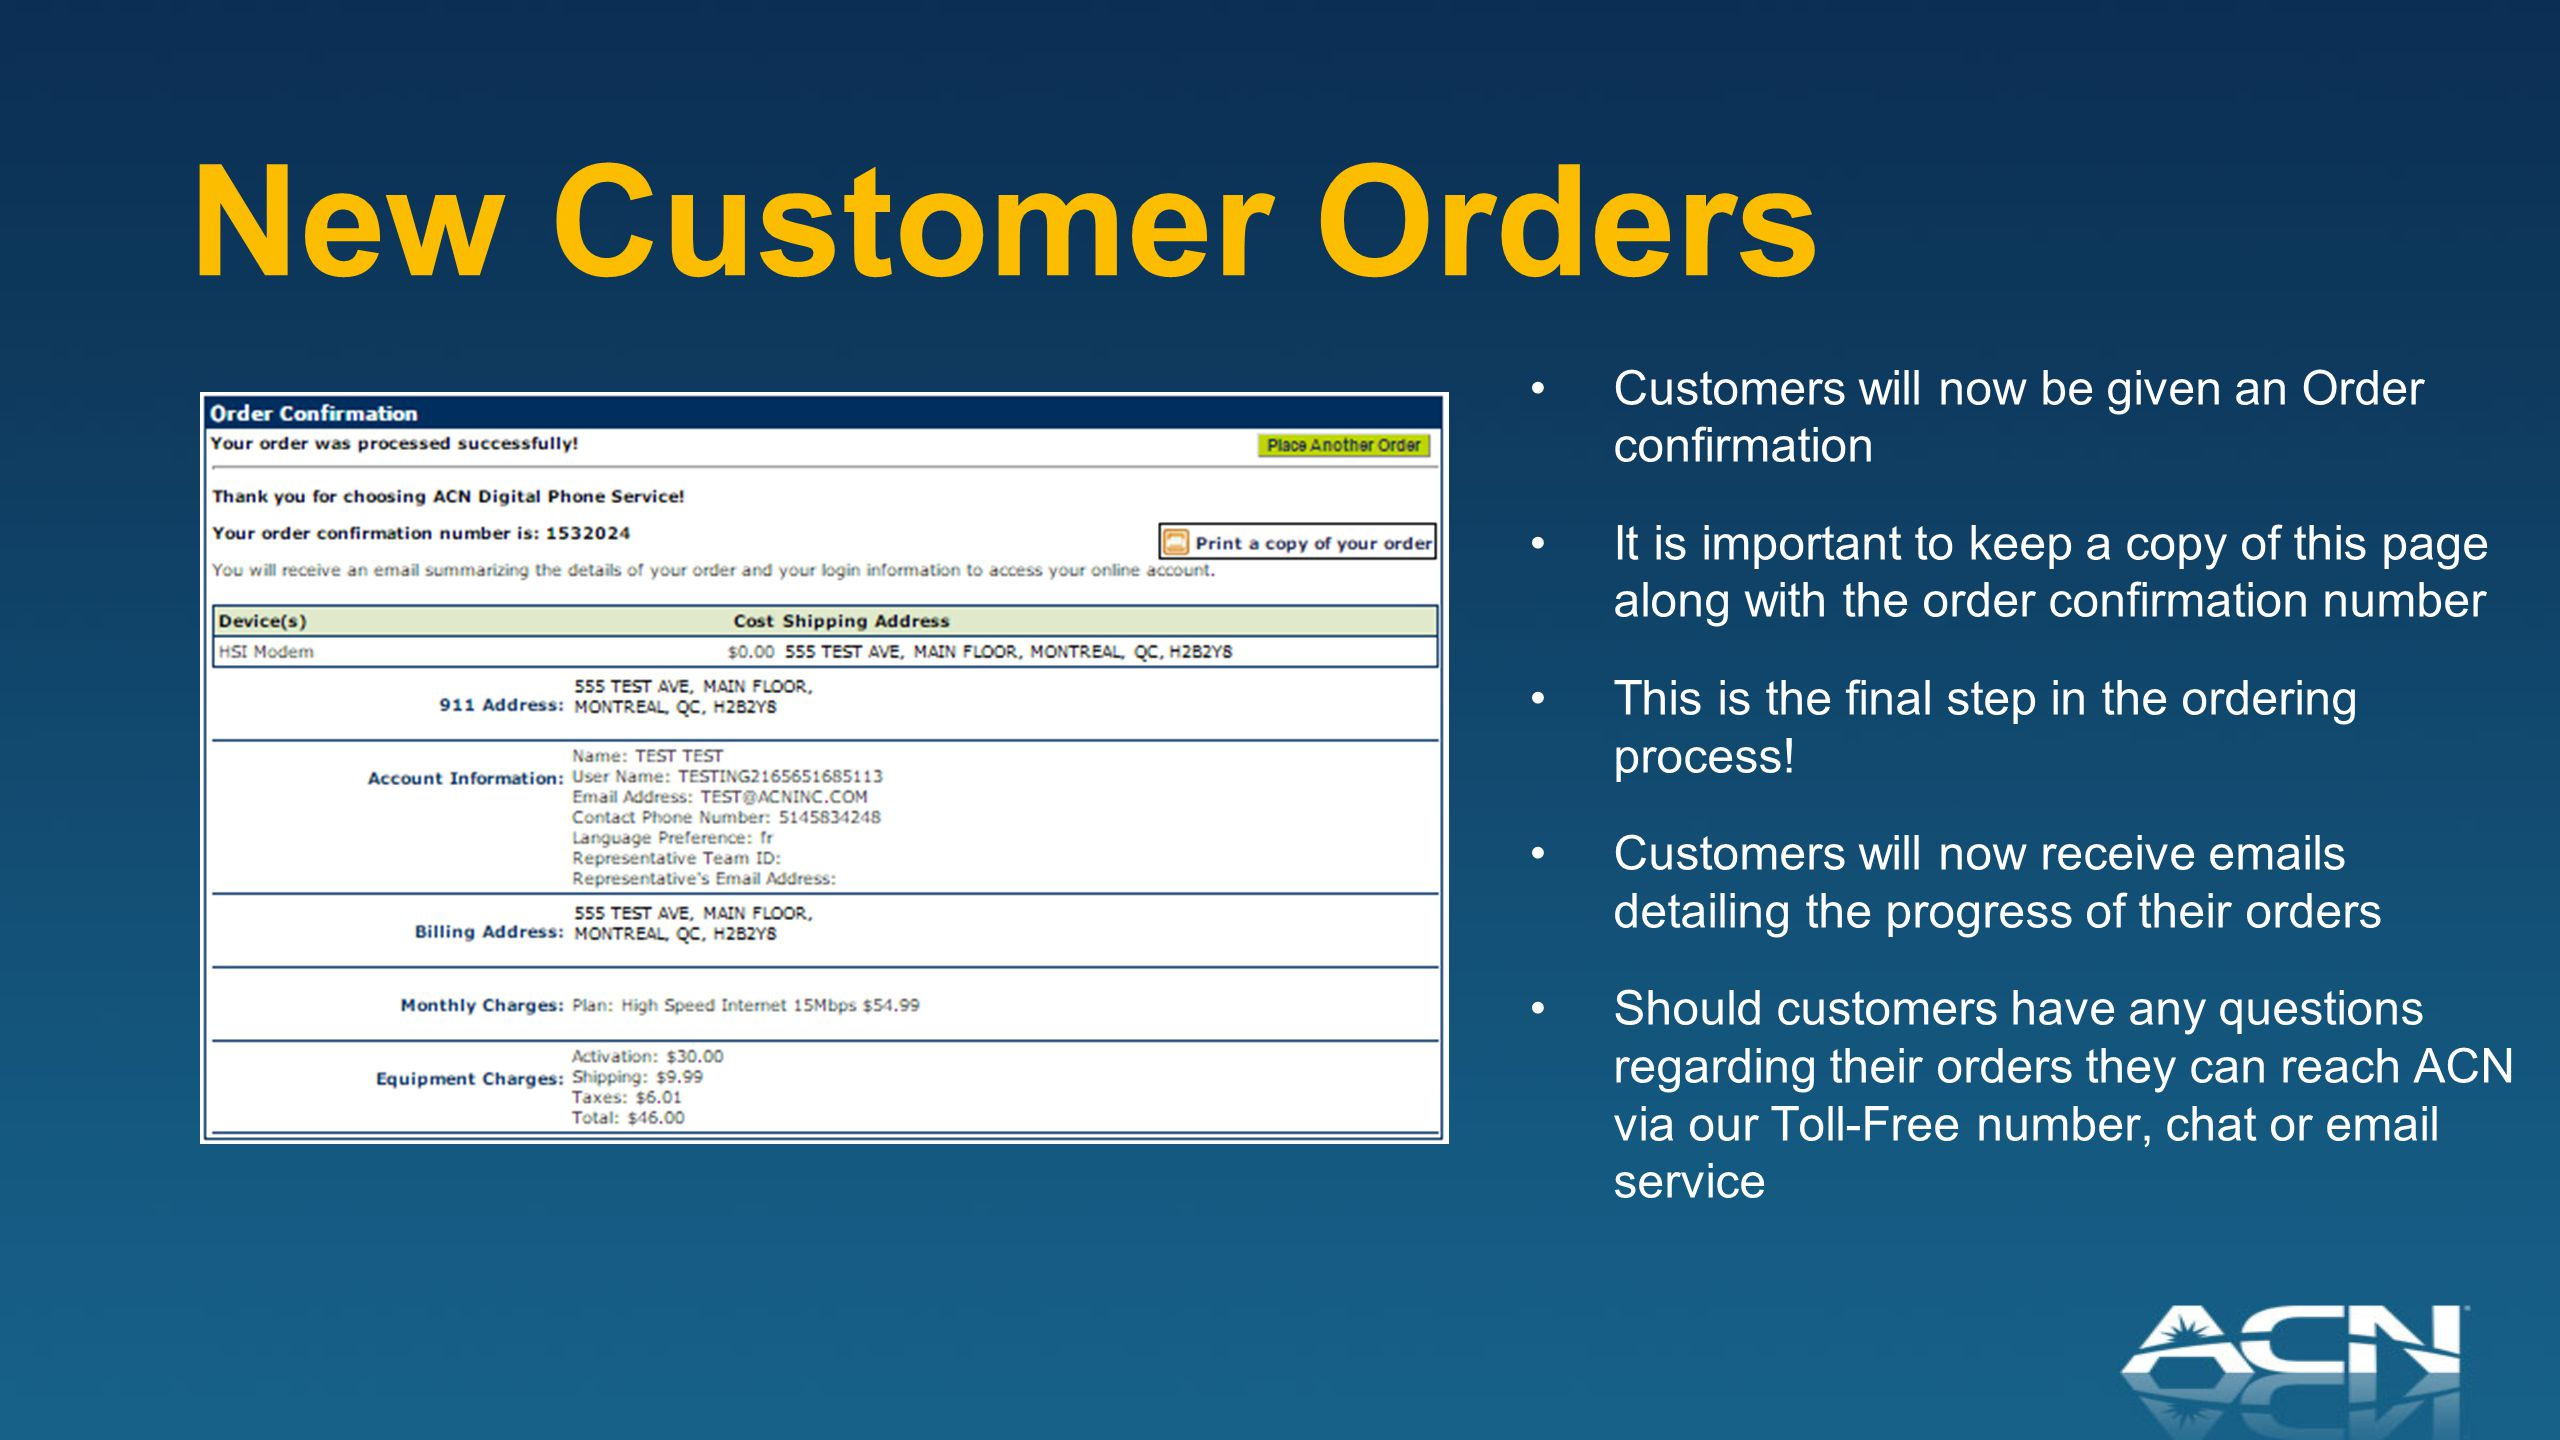 Customers will now be given an Order confirmation It is important to keep a copy of this page along with the order confirmation number This is the final step in the ordering process.